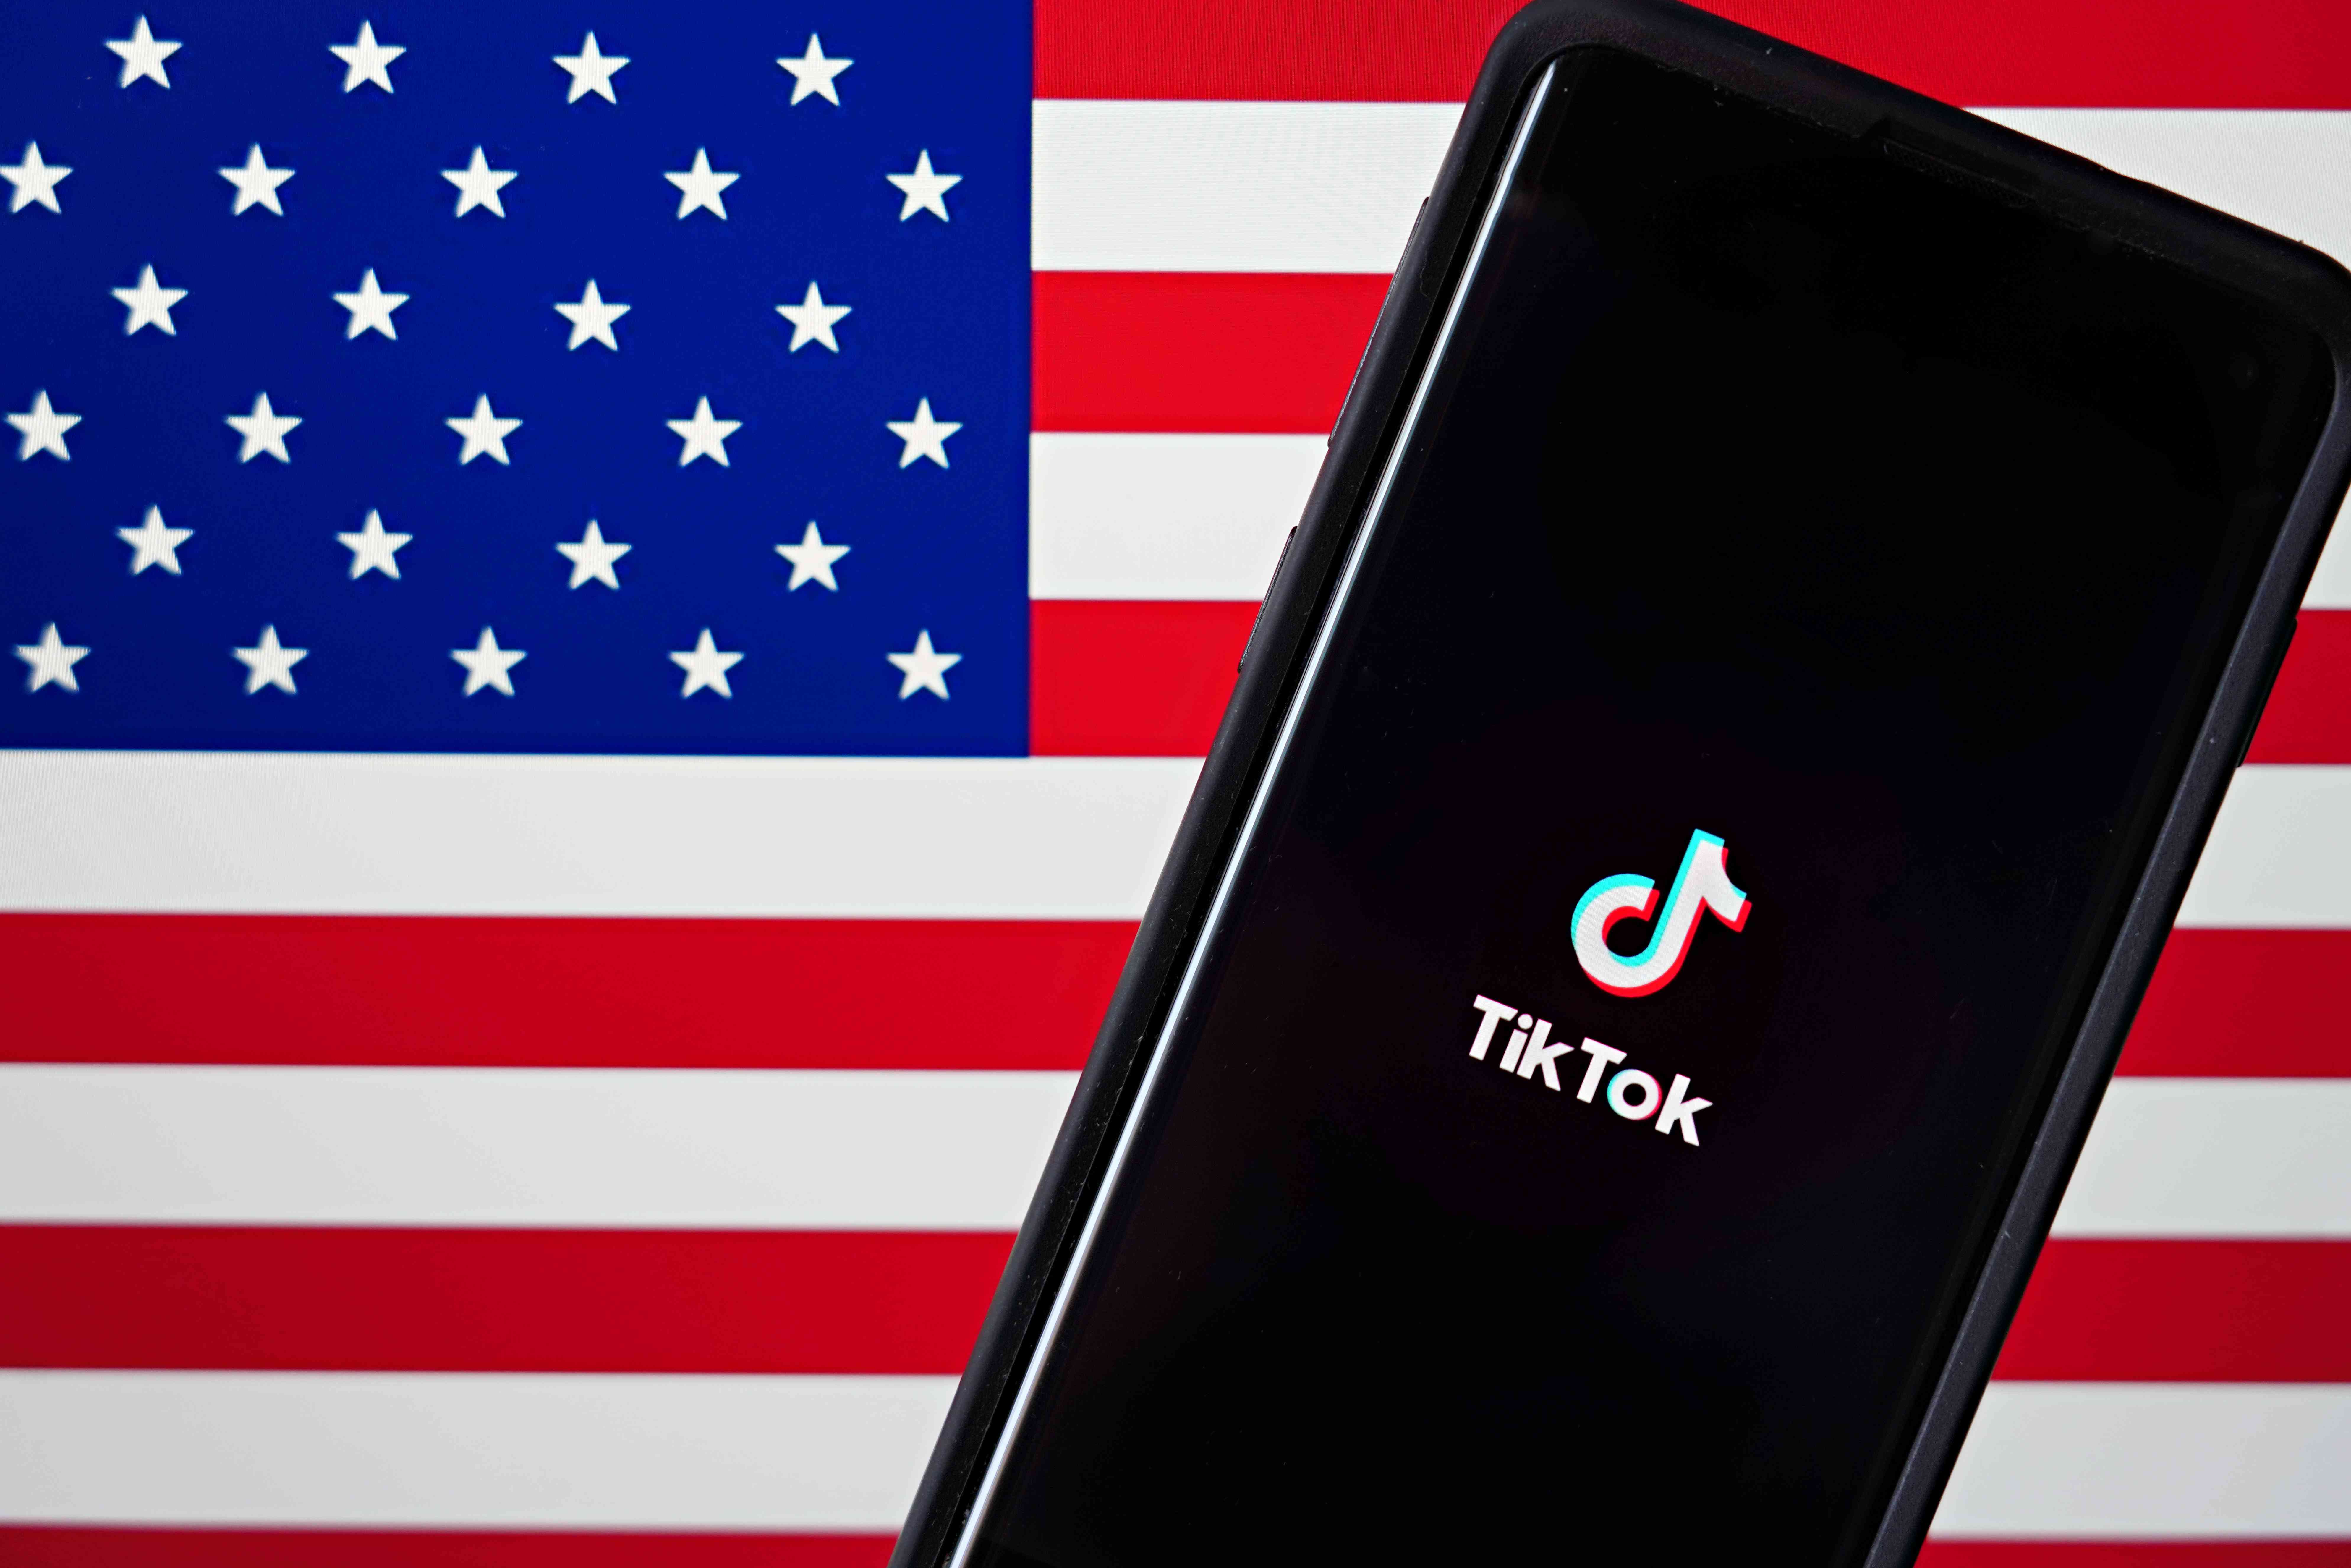 A mobile phone featuring the TikTok app is displayed next to the American flag